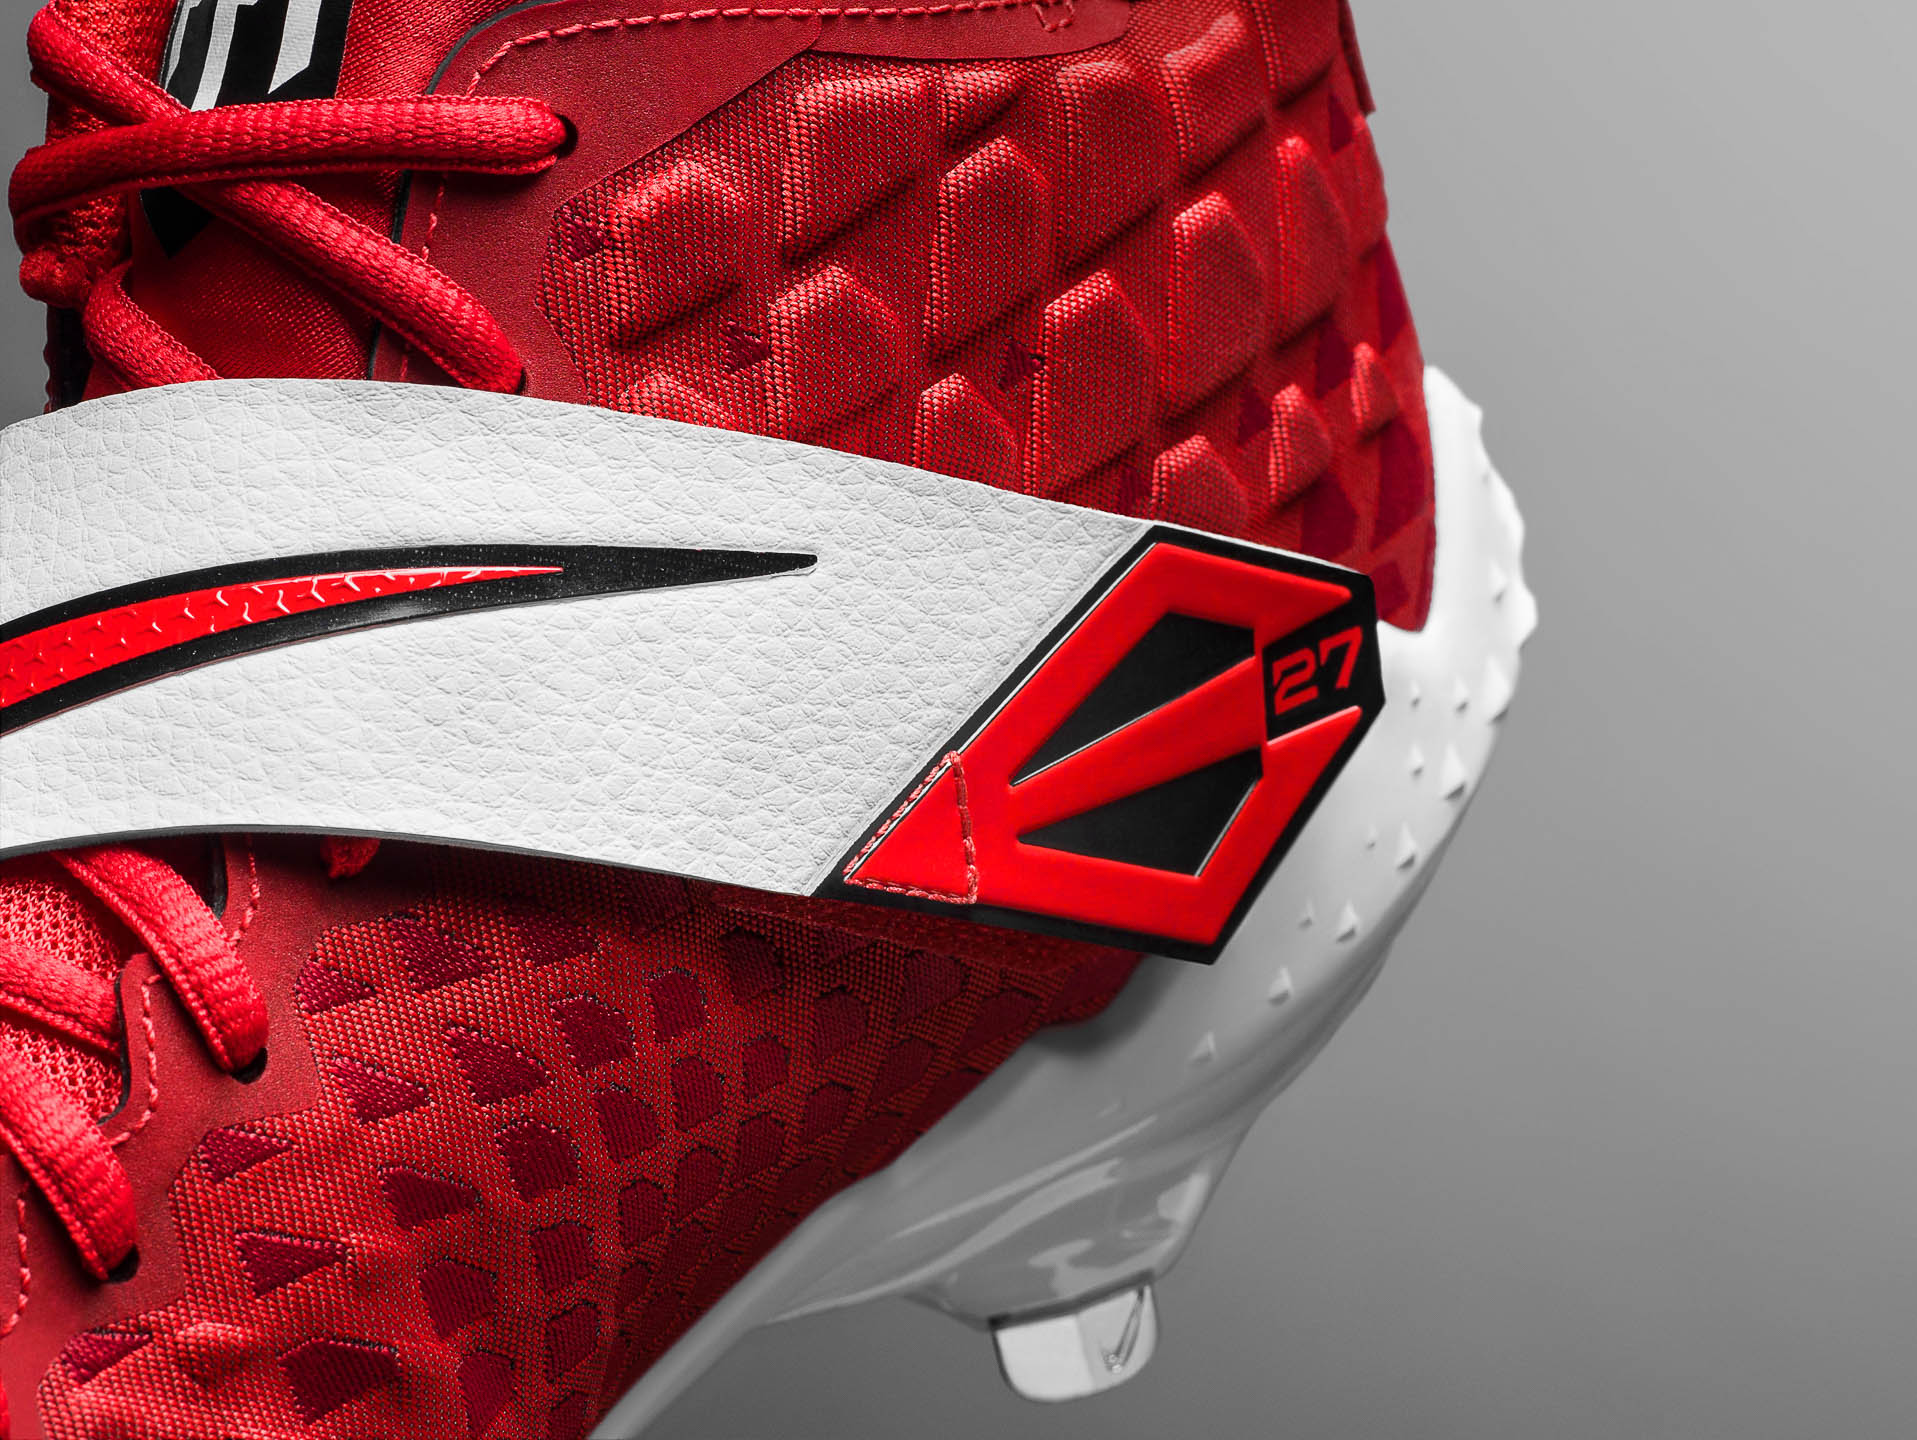 Fa19_BSBL_Trout6_NA_Cleat_02